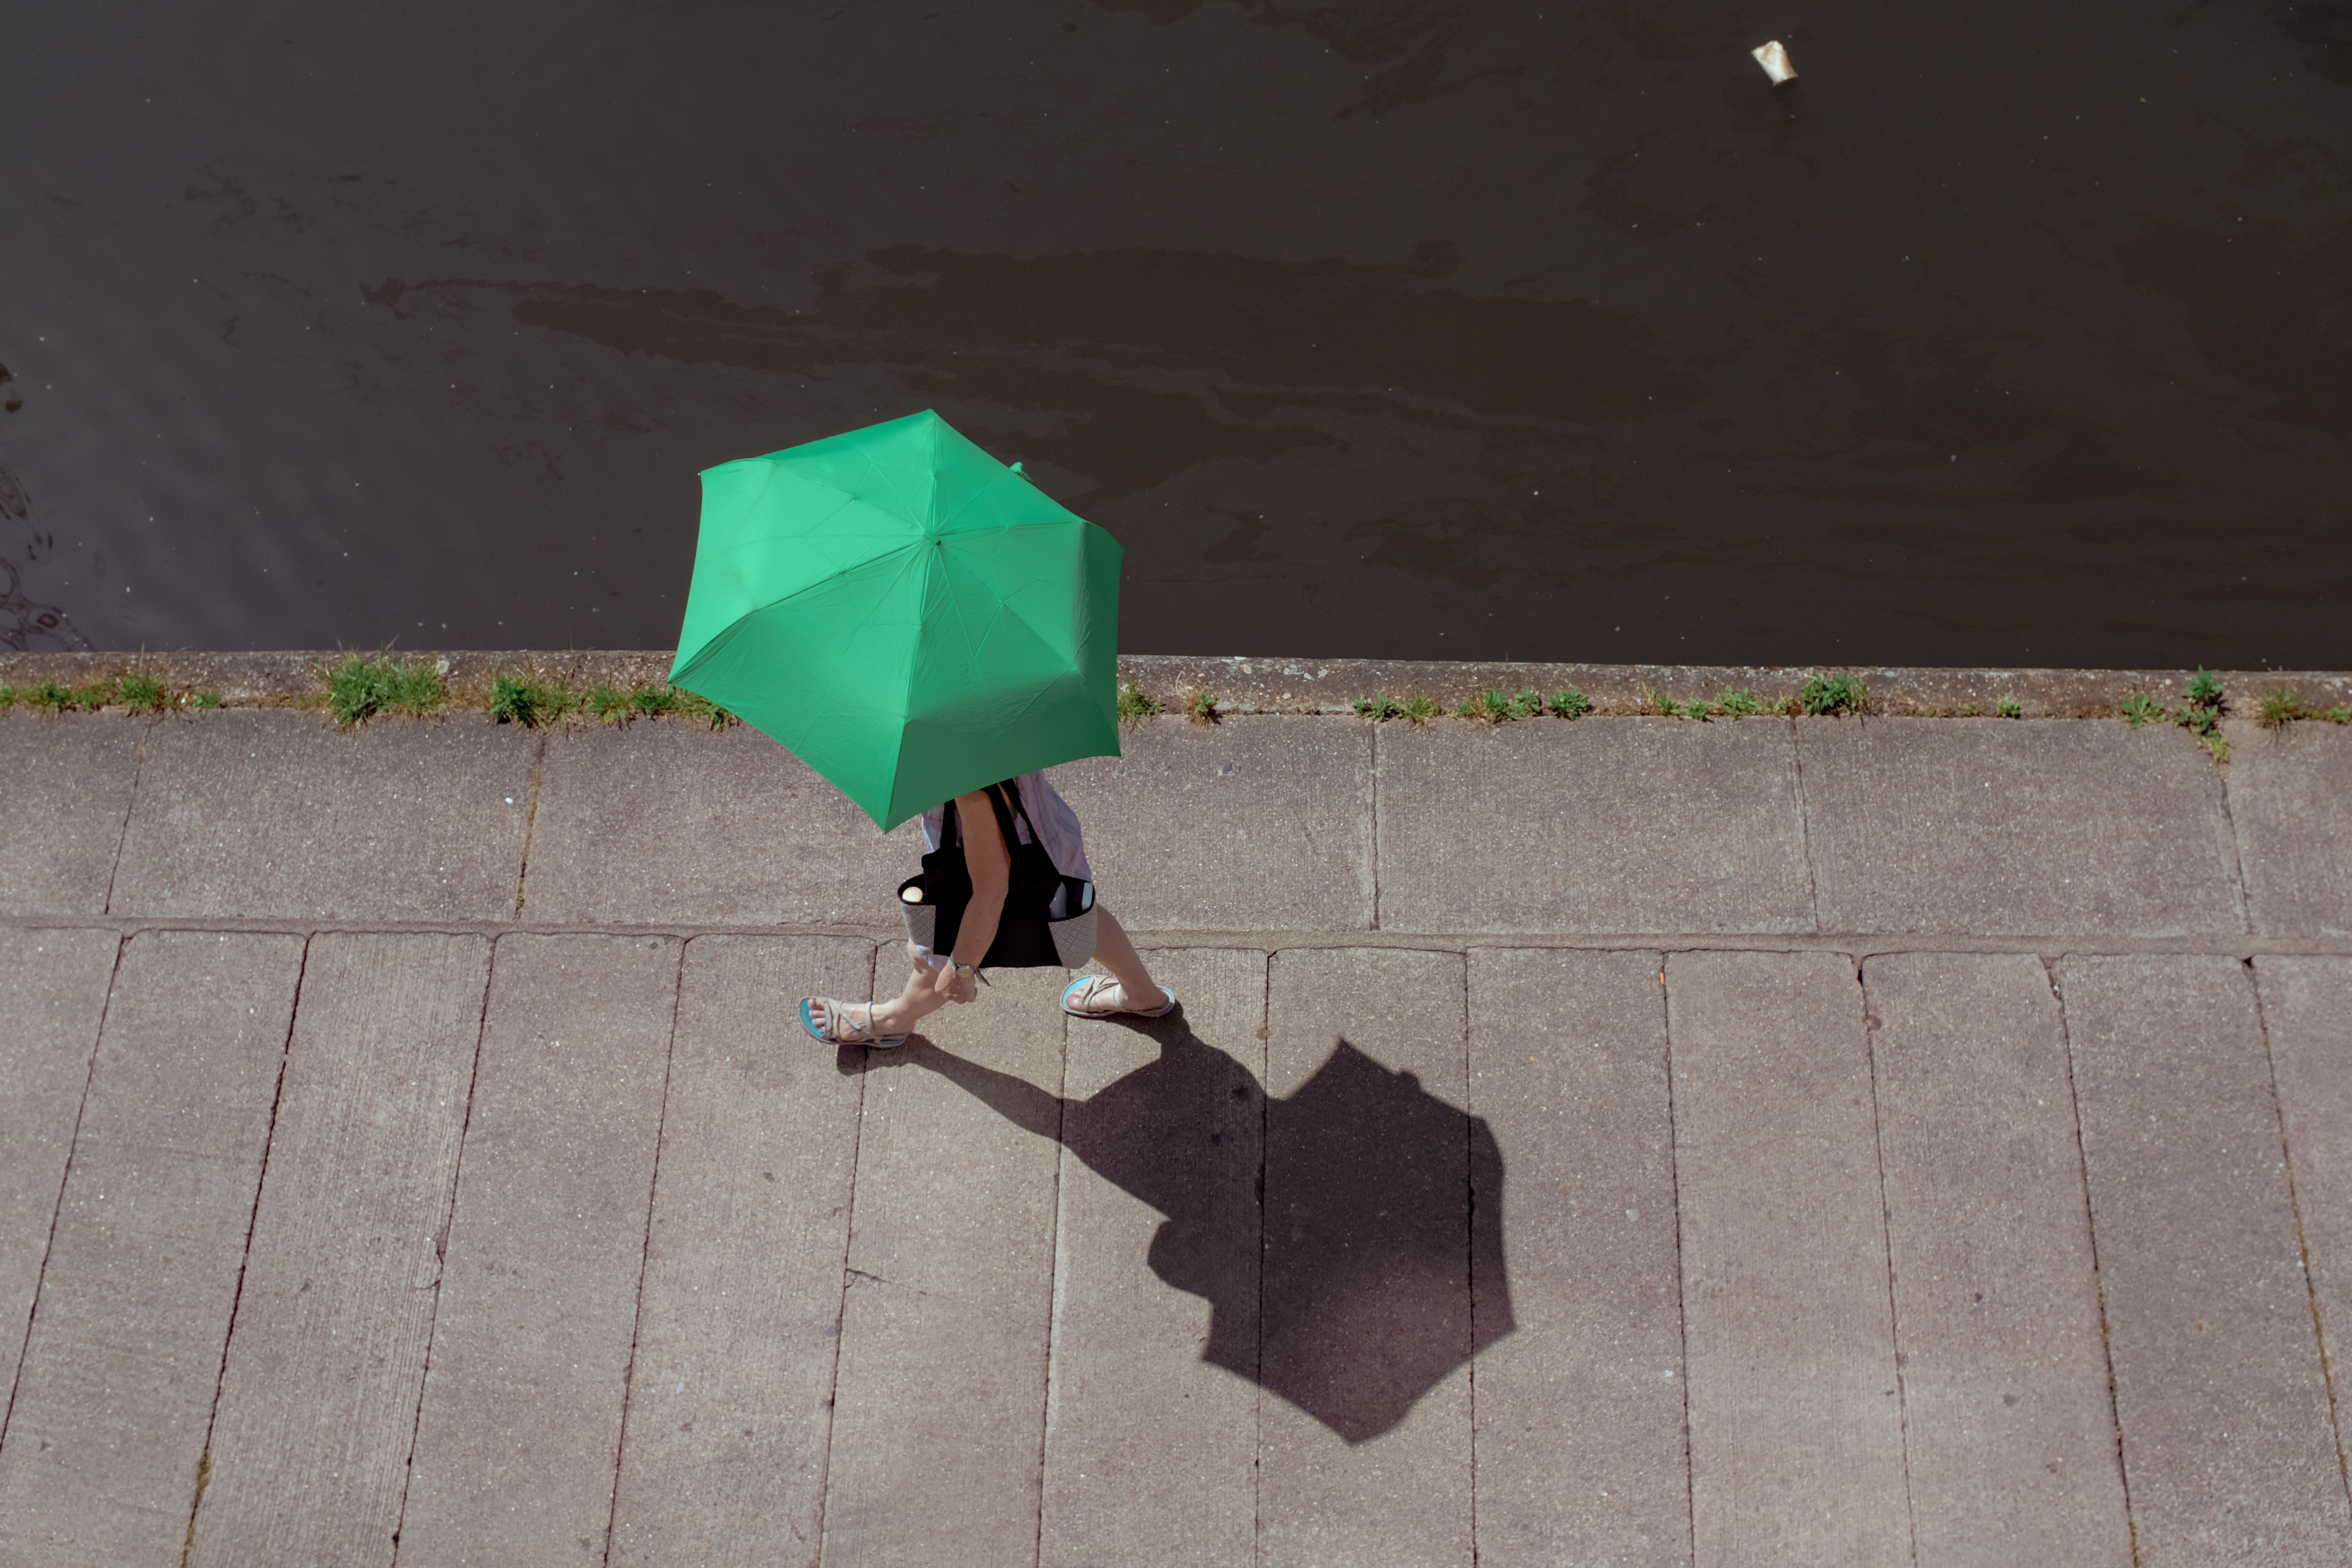 woman walking on grey pavement holding green umbrella